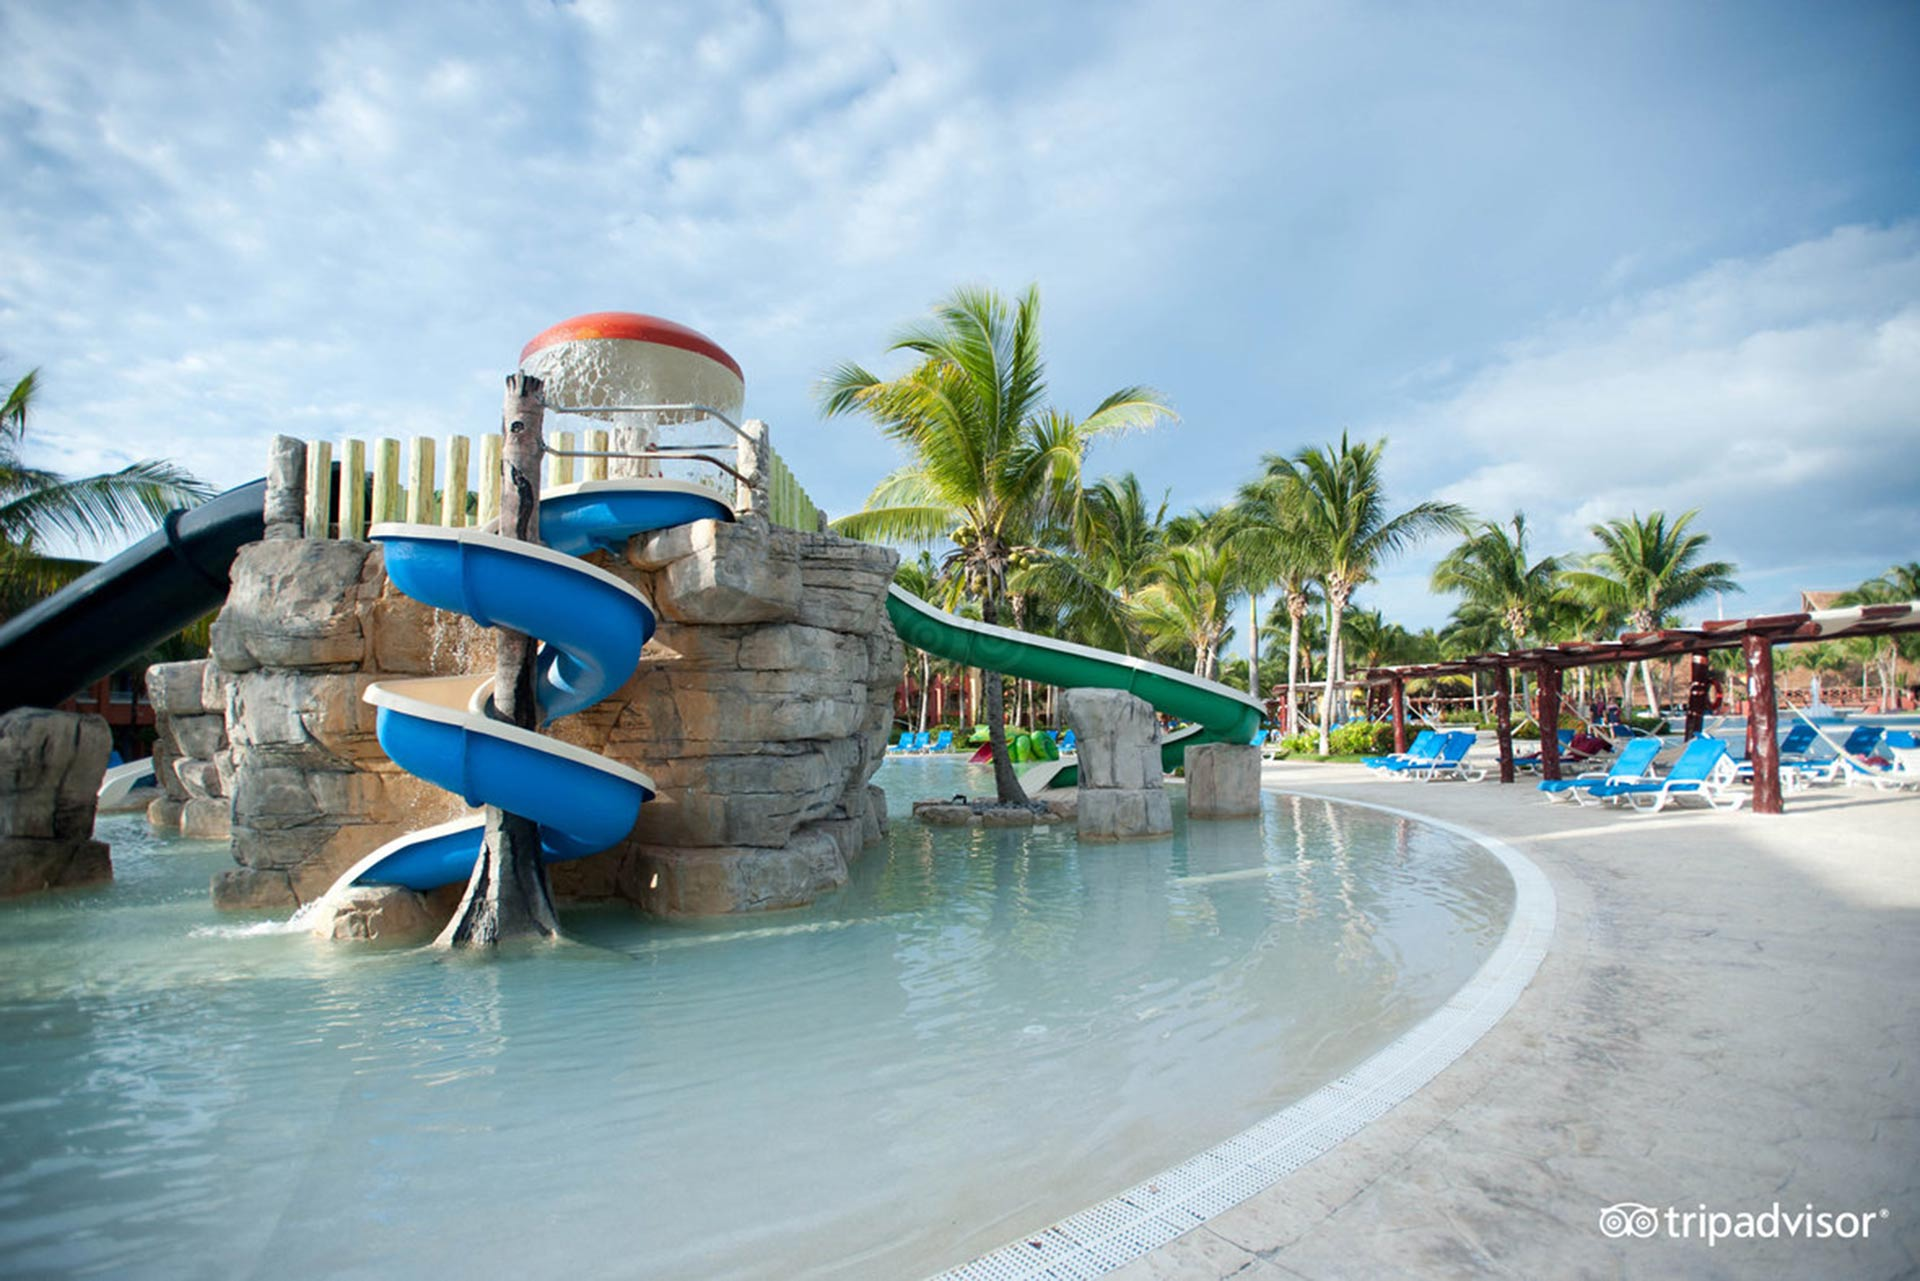 The Kiddy Pool at the Barcelo Maya Colonial